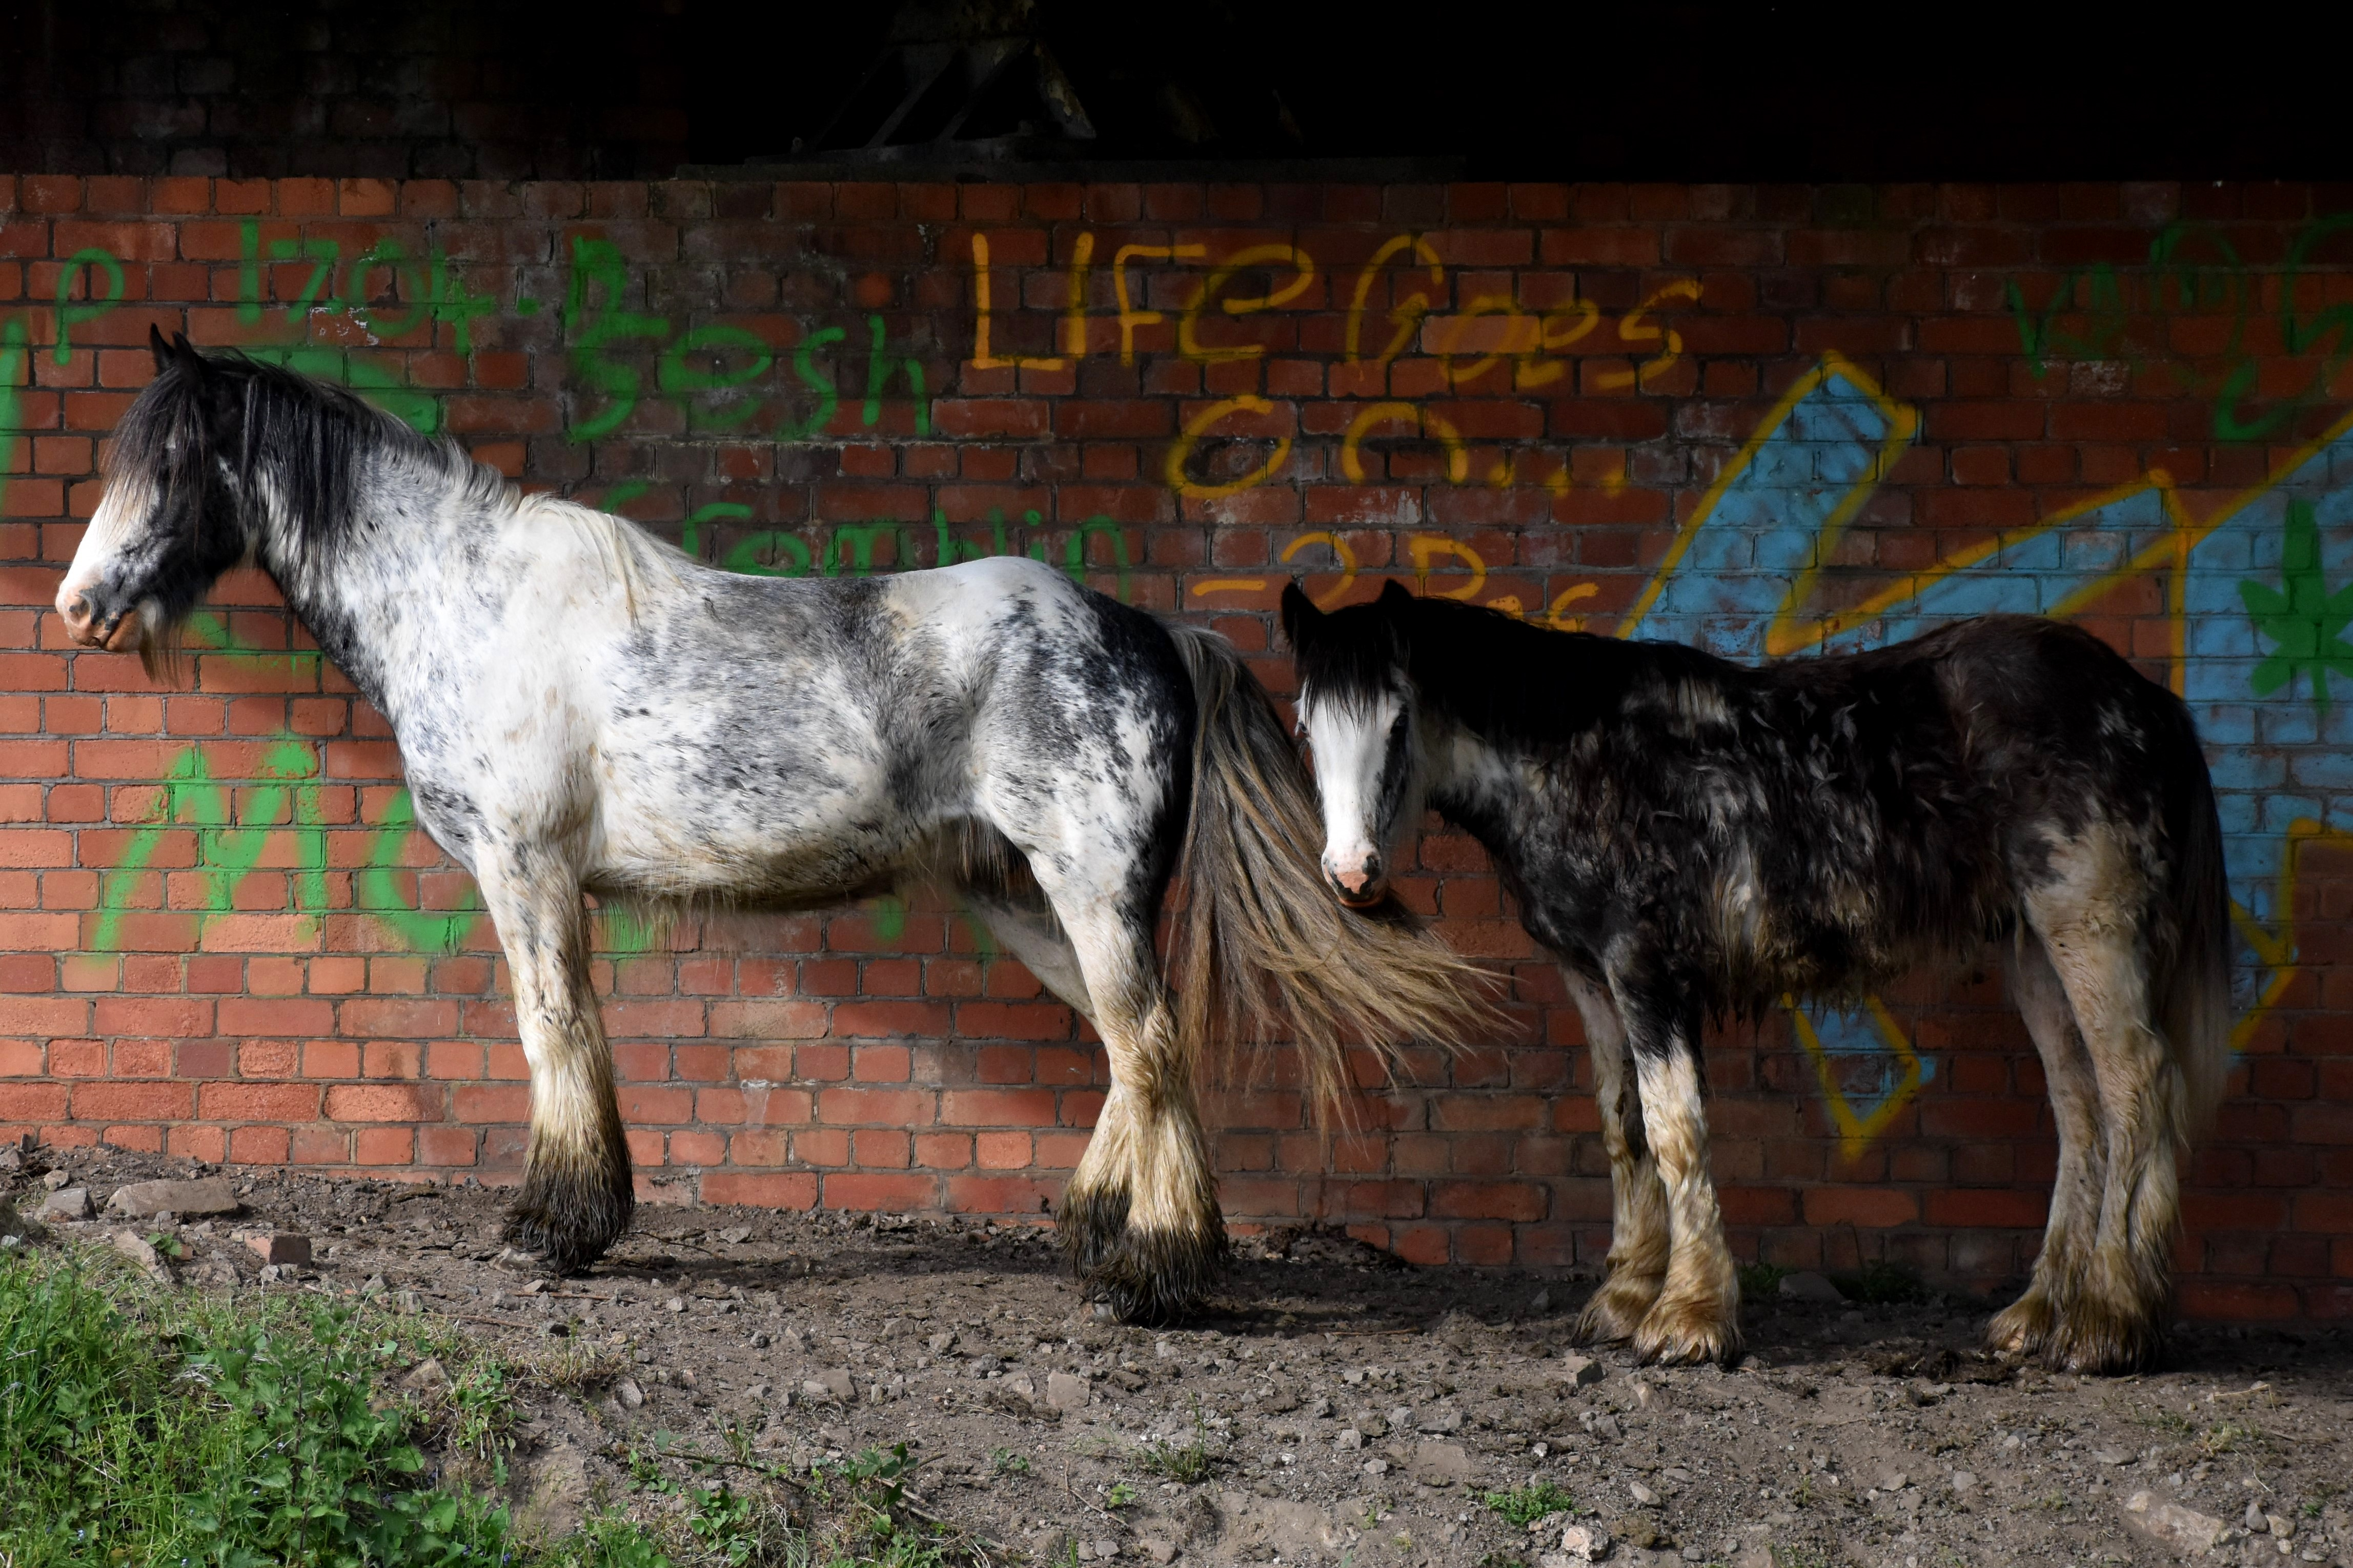 Photo of two ponies in an underpass with 'Life goes on' graffitied on wall behind